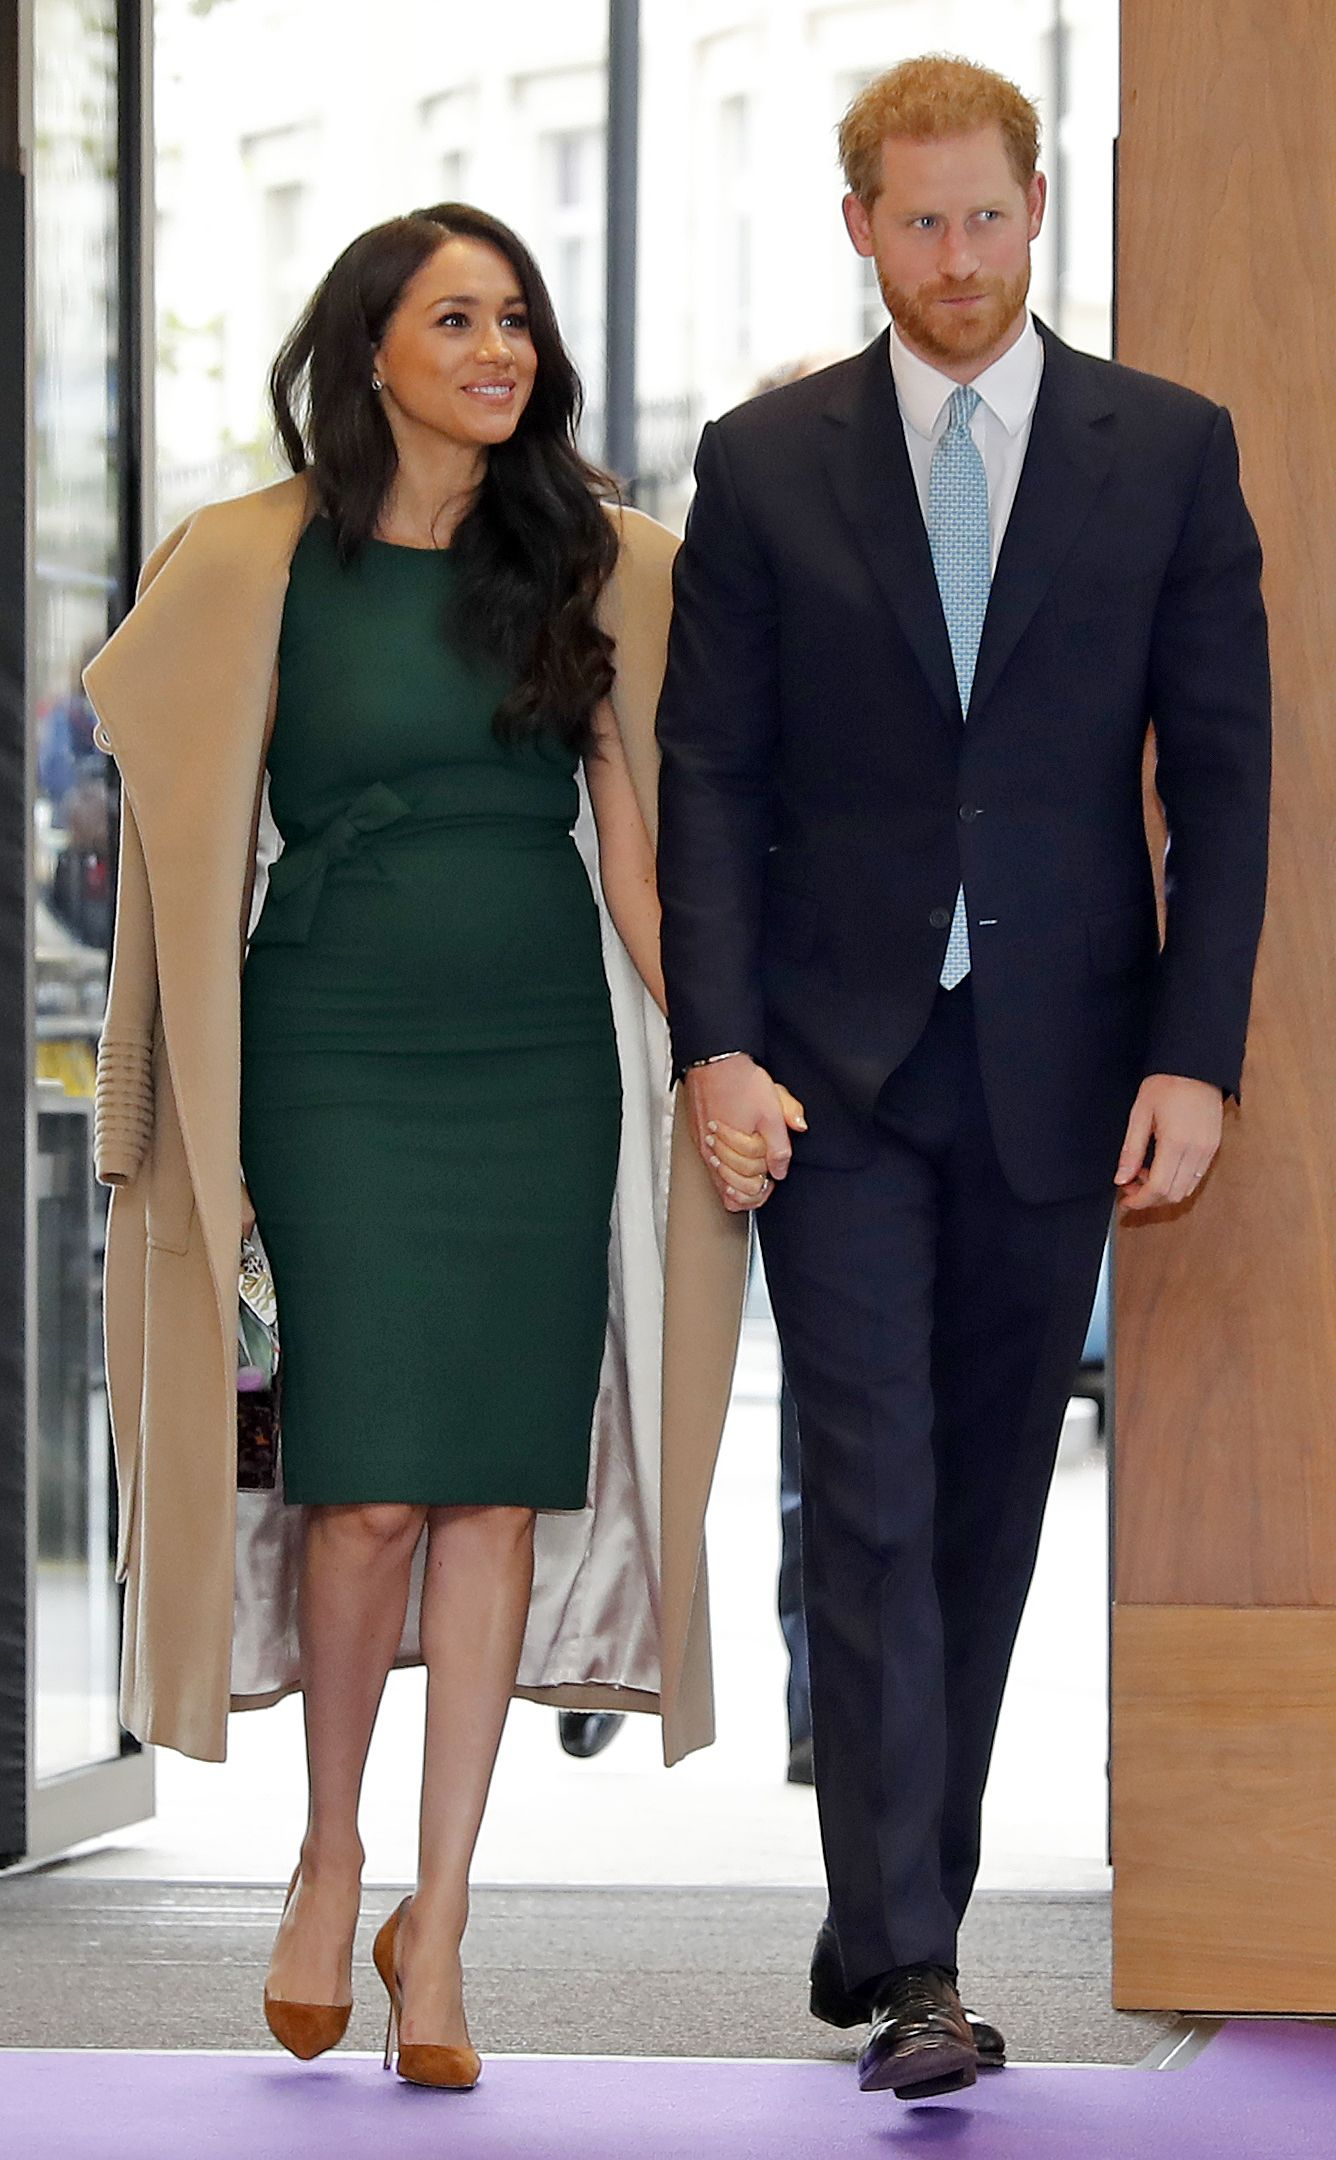 Meghan Markle Wears a Green Dress and Tan Coat to the WellChild Awards